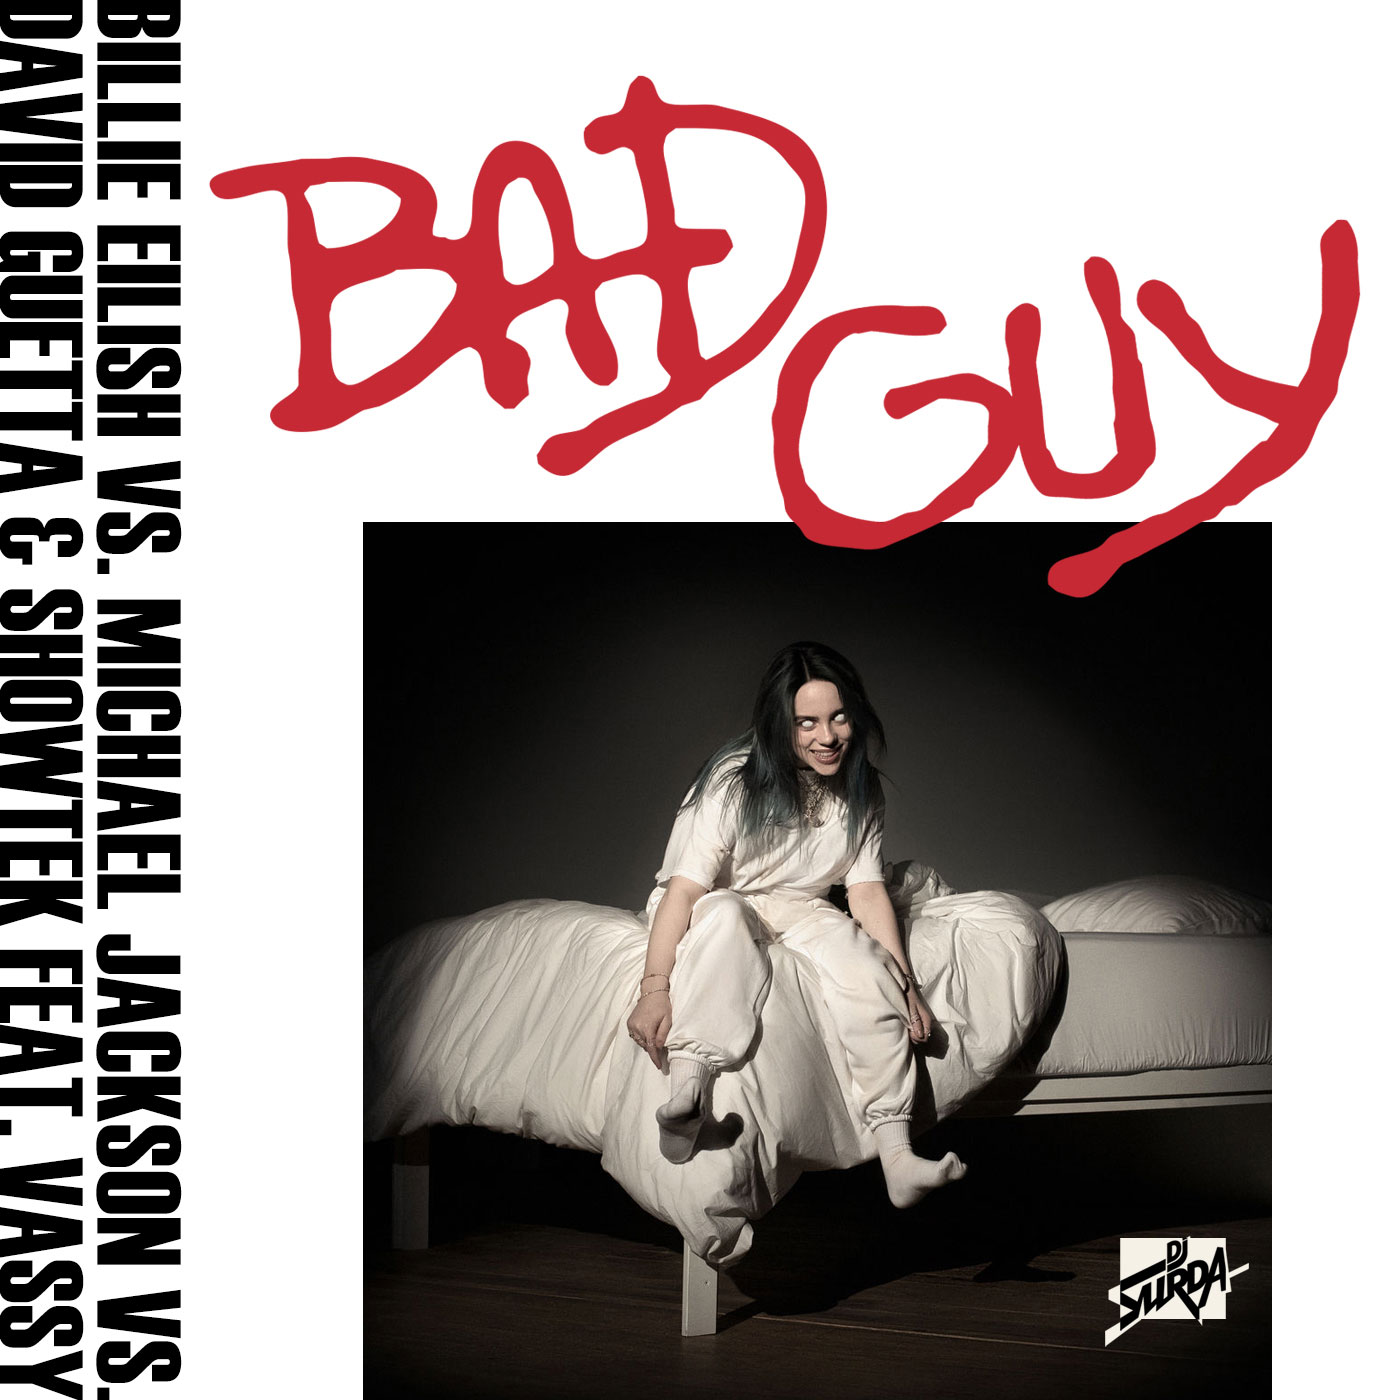 211 Dj. Surda - BAD guy (Mashup) (Billie Eilish, Michael Jackson & David Guetta)